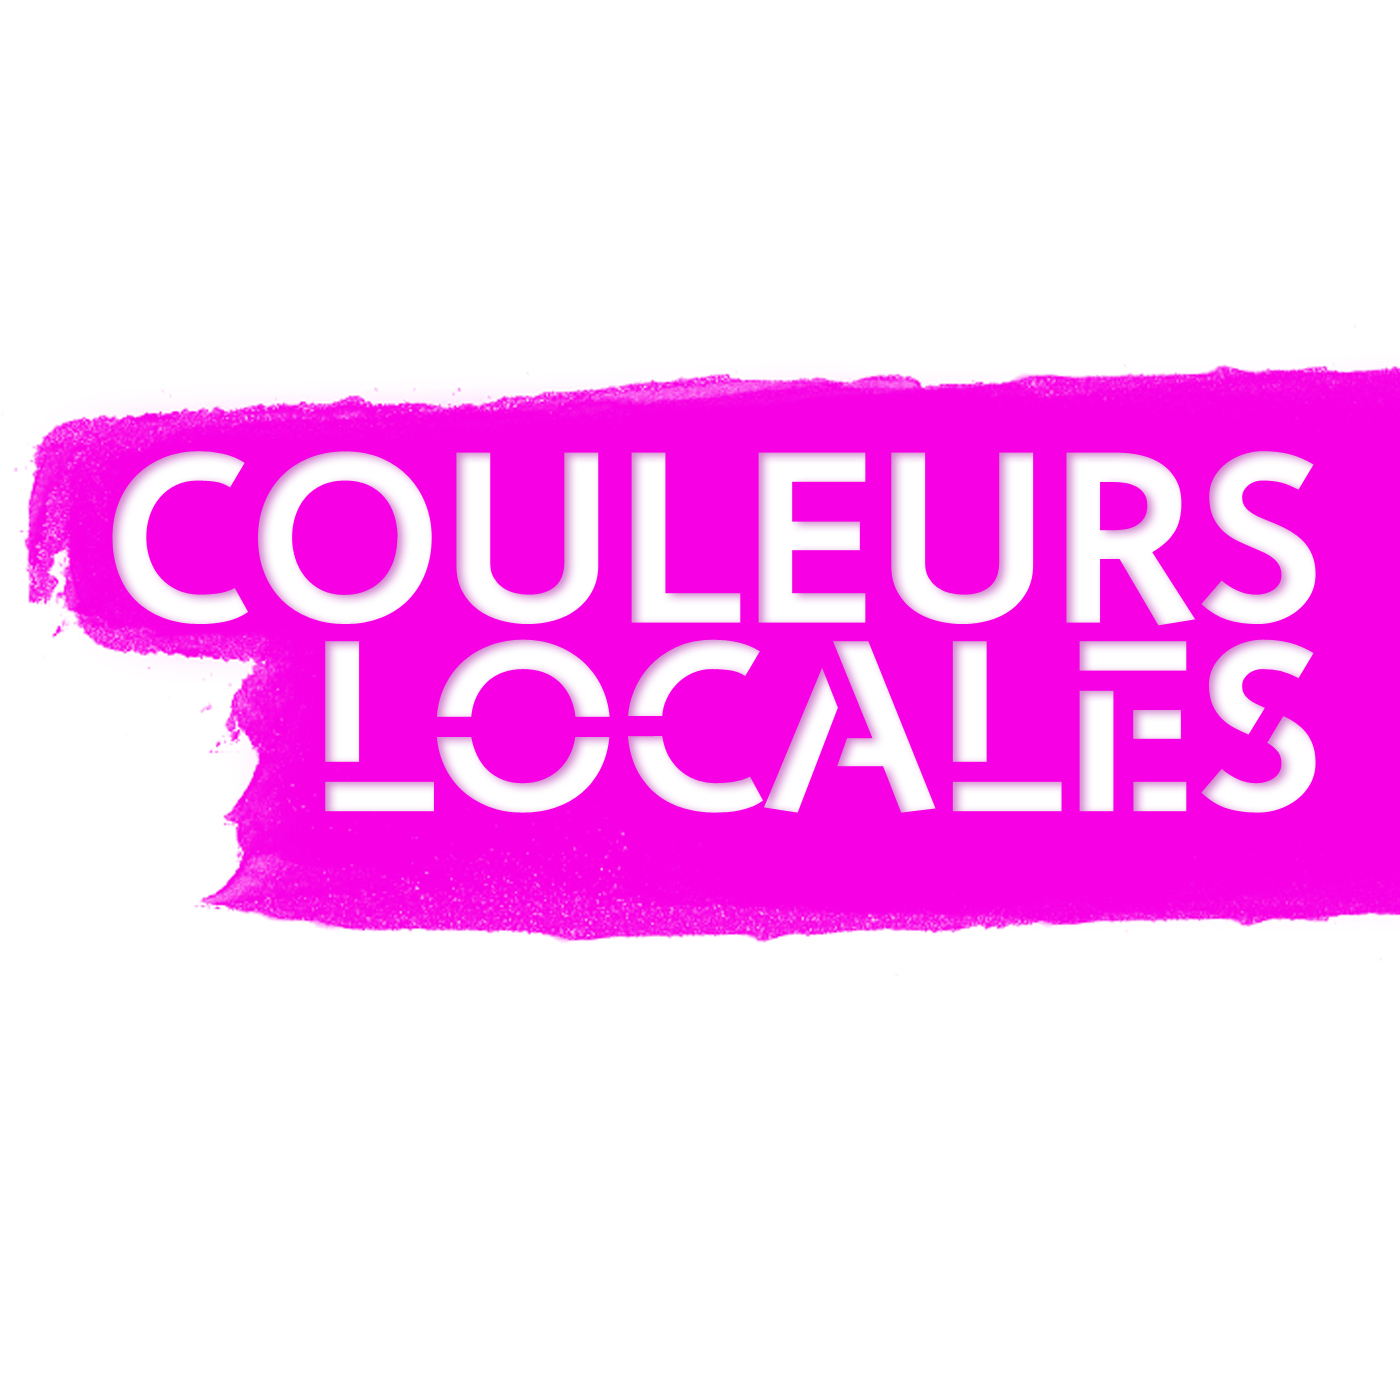 Couleurs locales - RTS